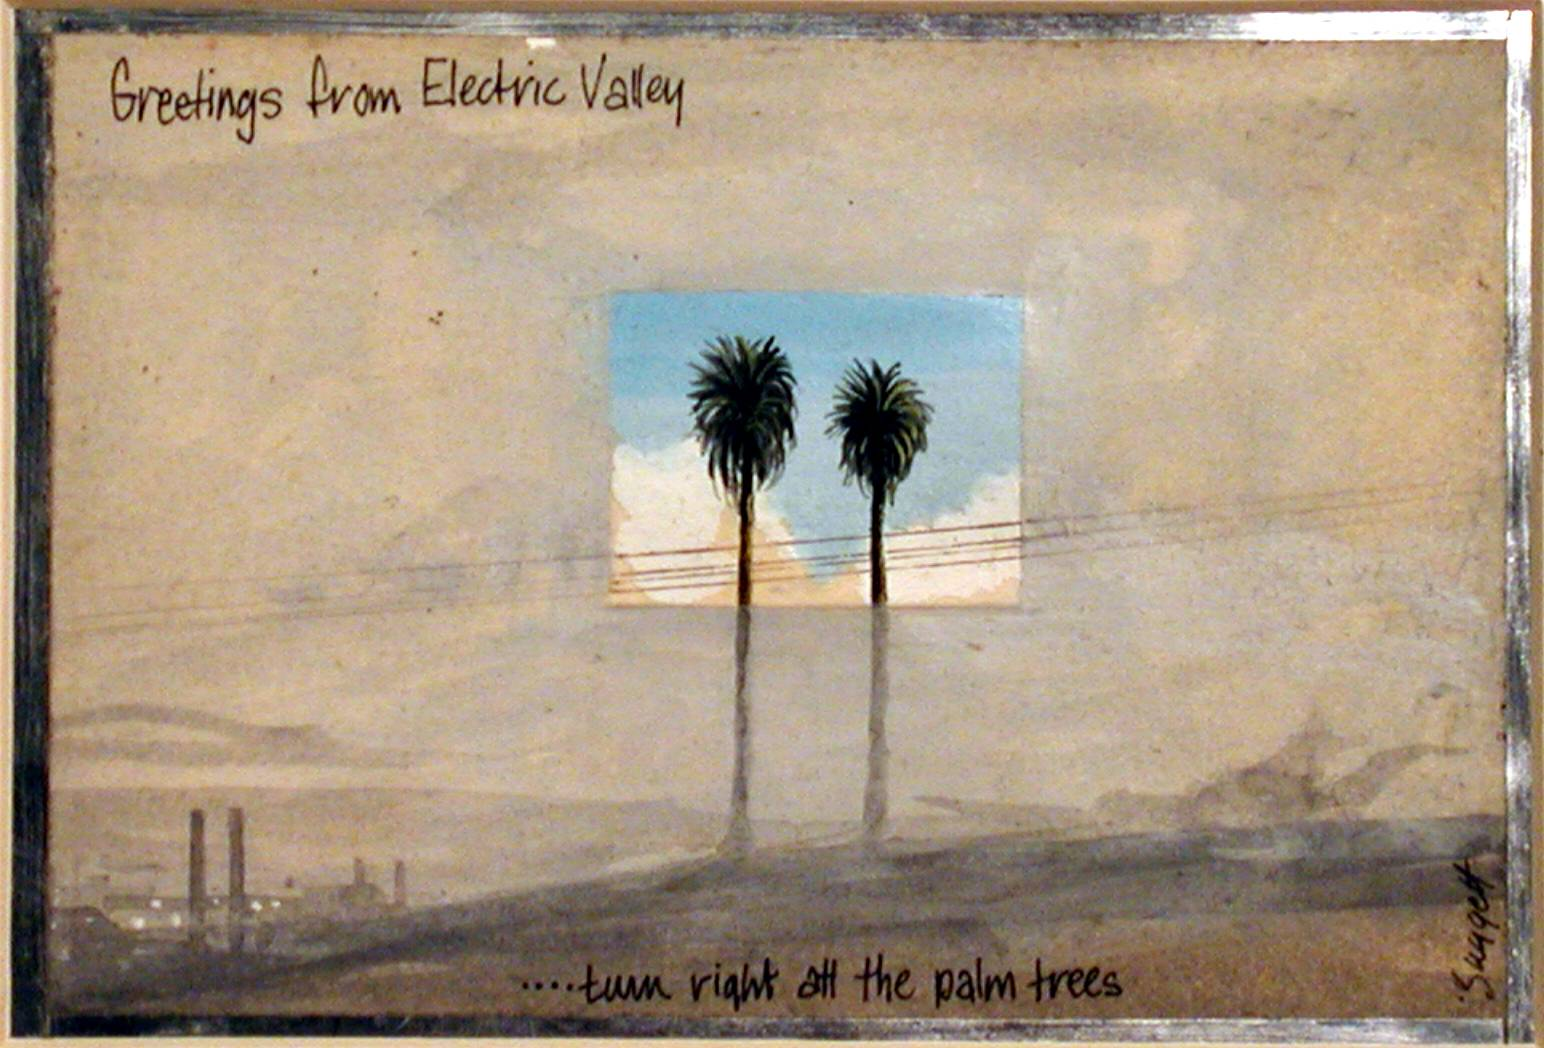 Image credit: Colin Suggett 'Greetings From Electric Valley', 1979. Gouache, watercolour and ink on paper, aluminium. Image courtesy of the artist. Latrobe Regional Gallery Collection.